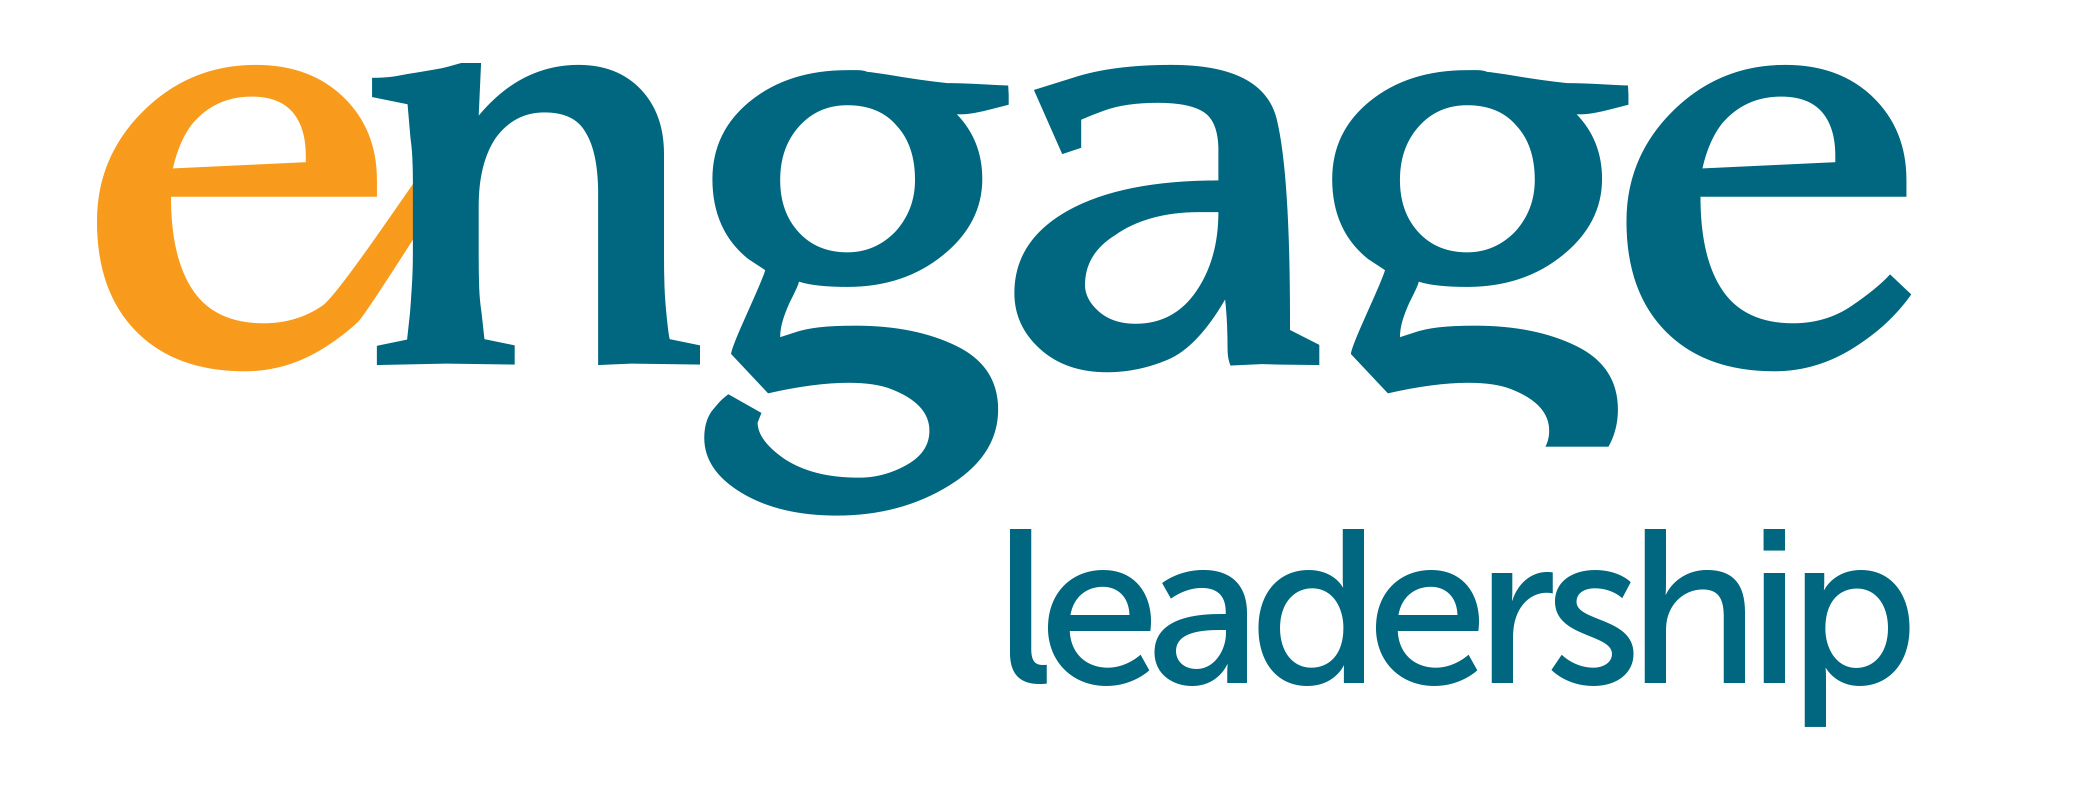 Engageleadership